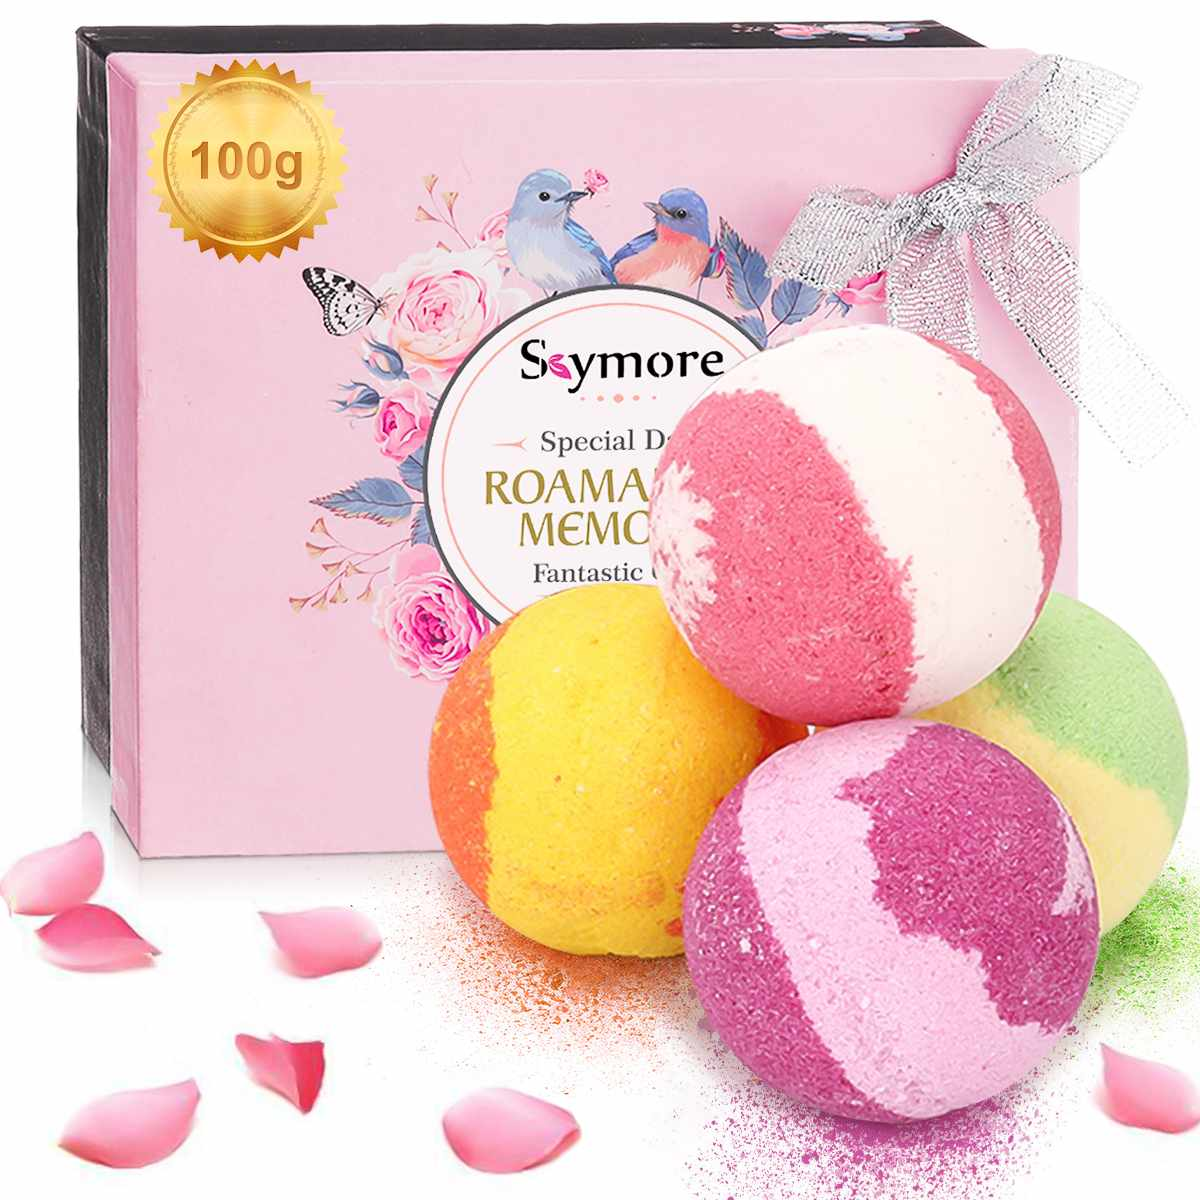 4PCS Round Bath Bomb Molds DIY Tool Bath Salt Ball Aromatherapy Type Body Cleaner Homemade Crafting Gifts Home Hotel Bathroom